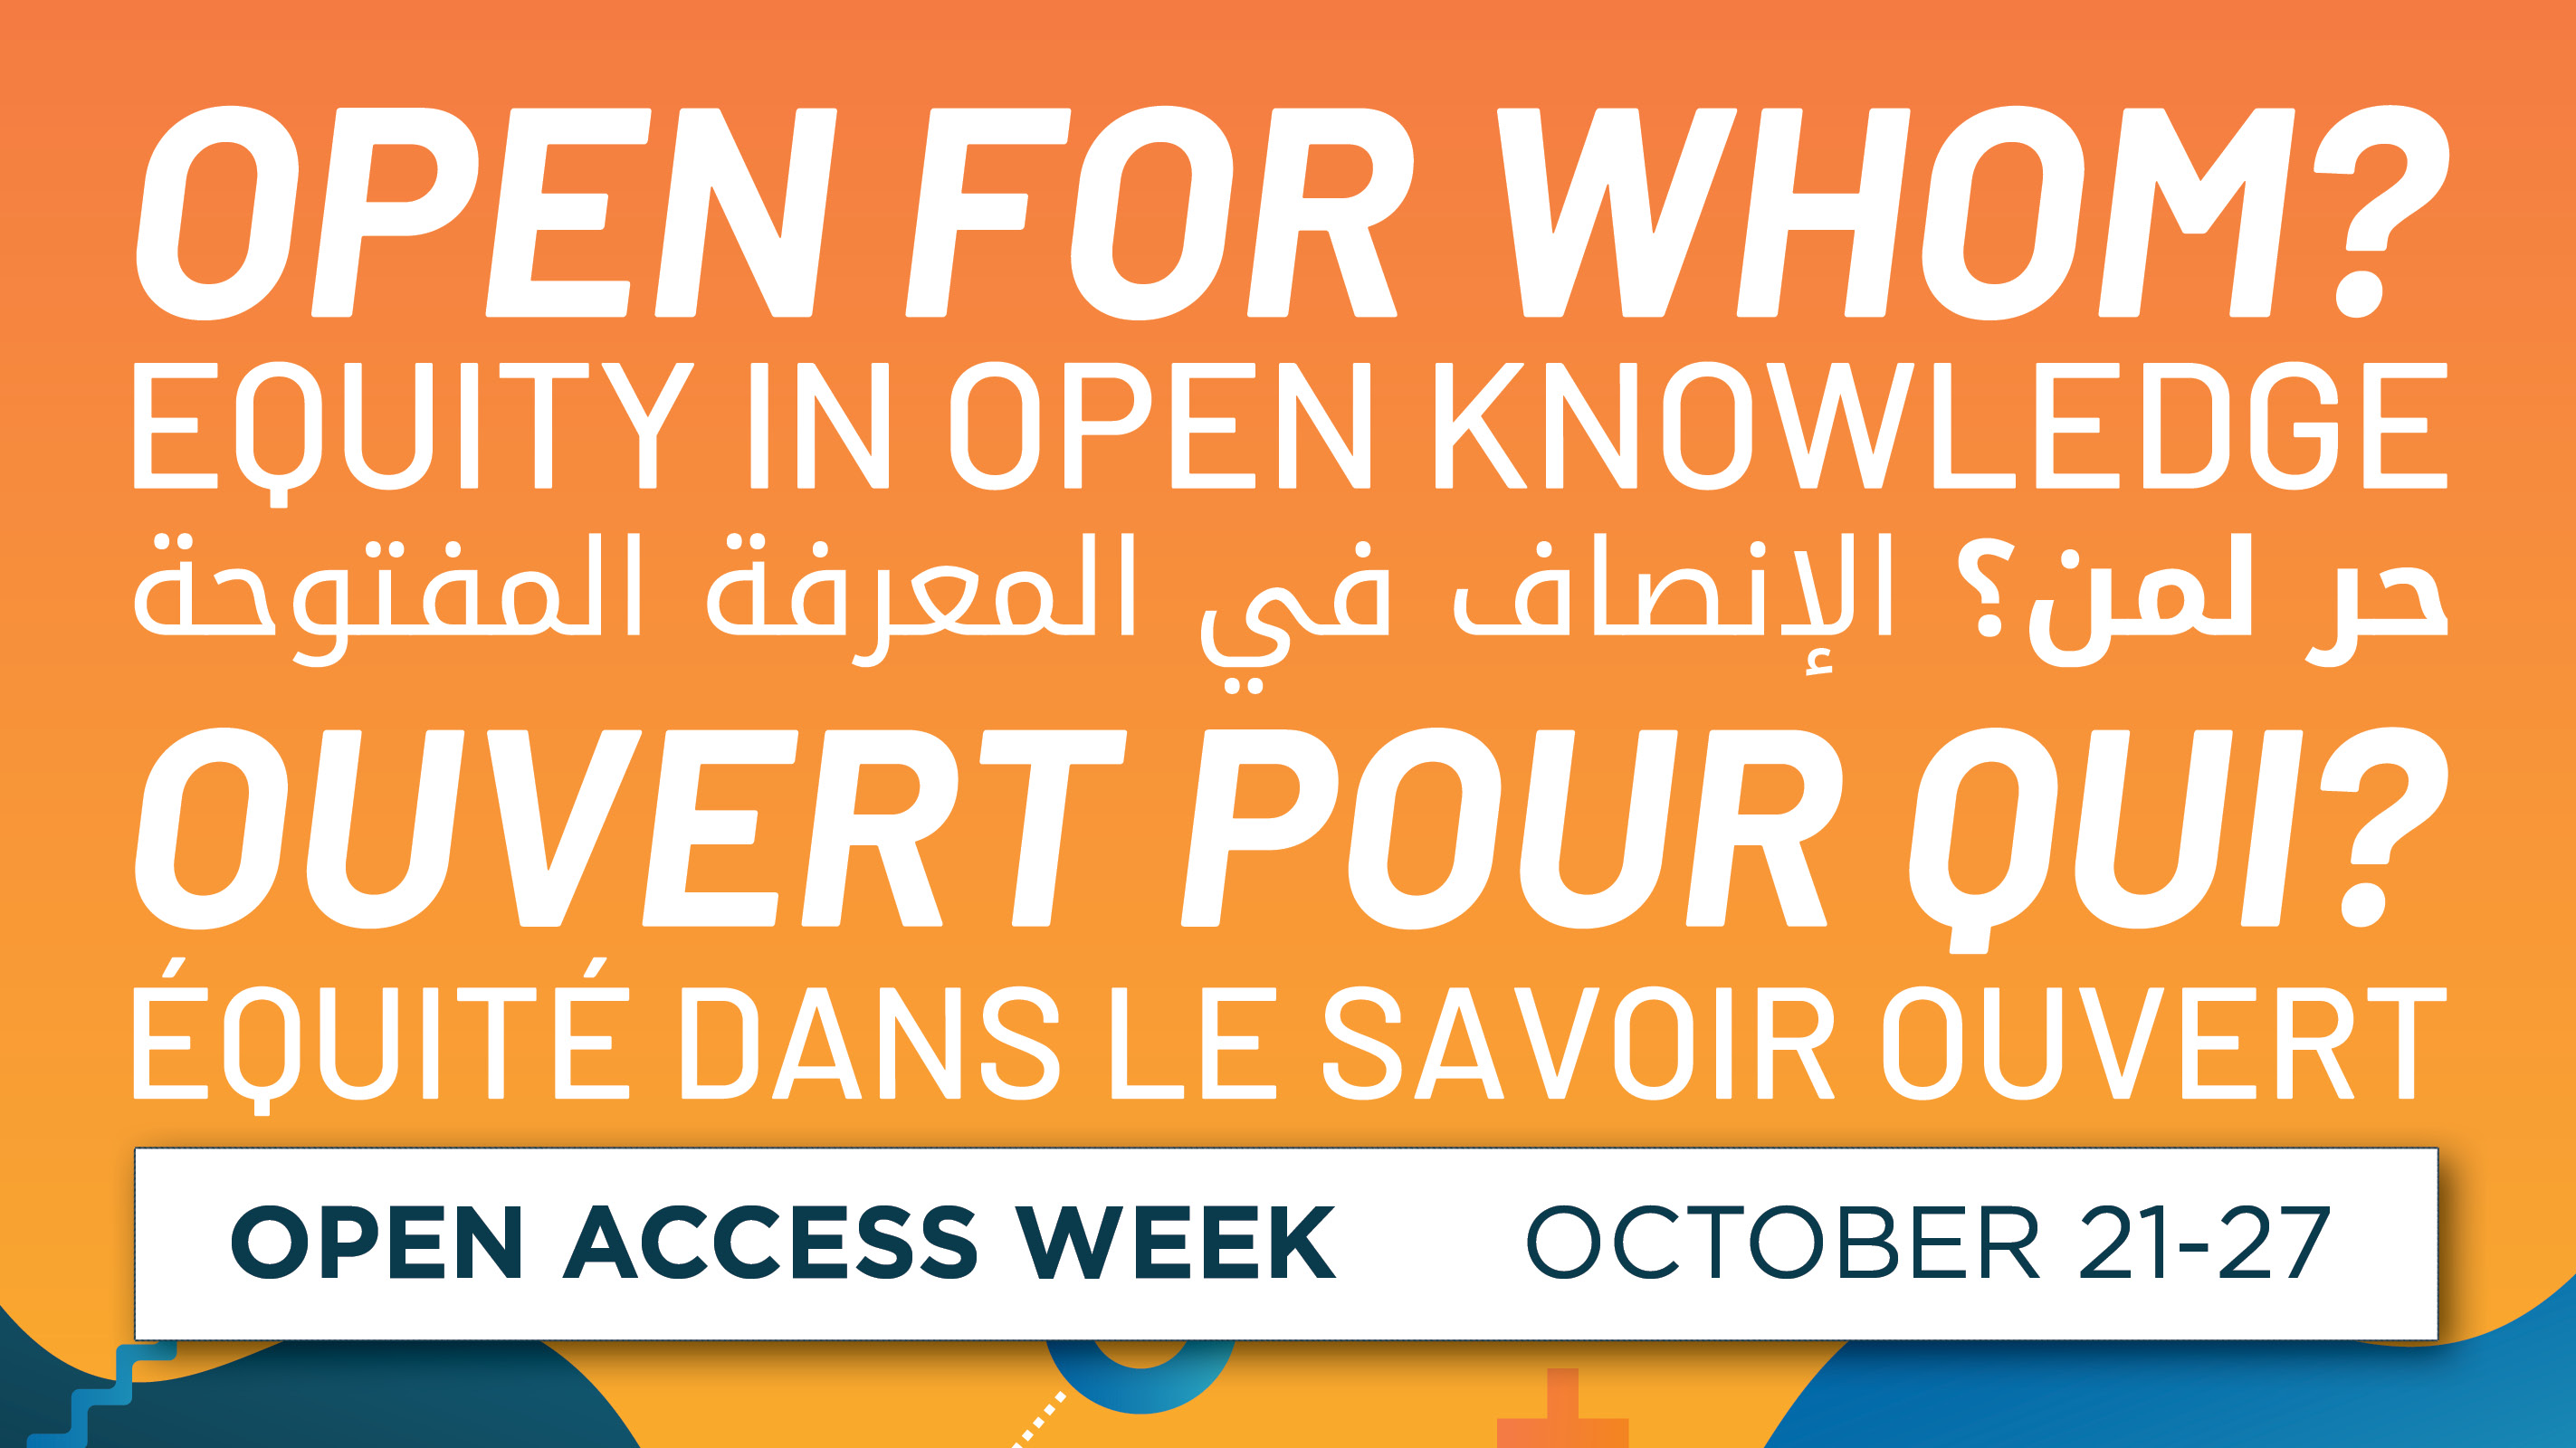 Open Access Week 2019. Open for Whom? Equity in Open Knowledge. October 21-27